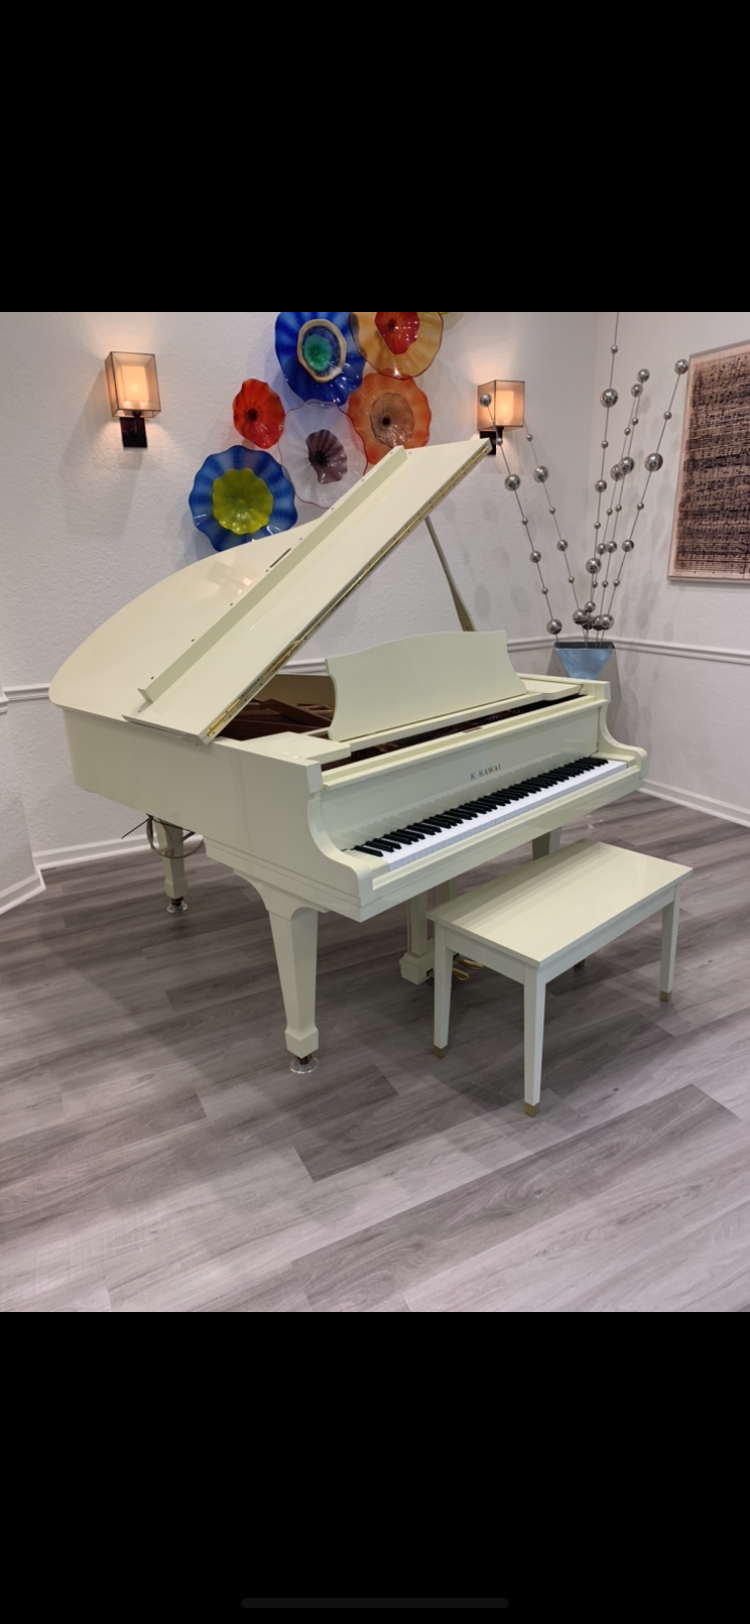 Mint ivory Kawai with PianoDisc player system